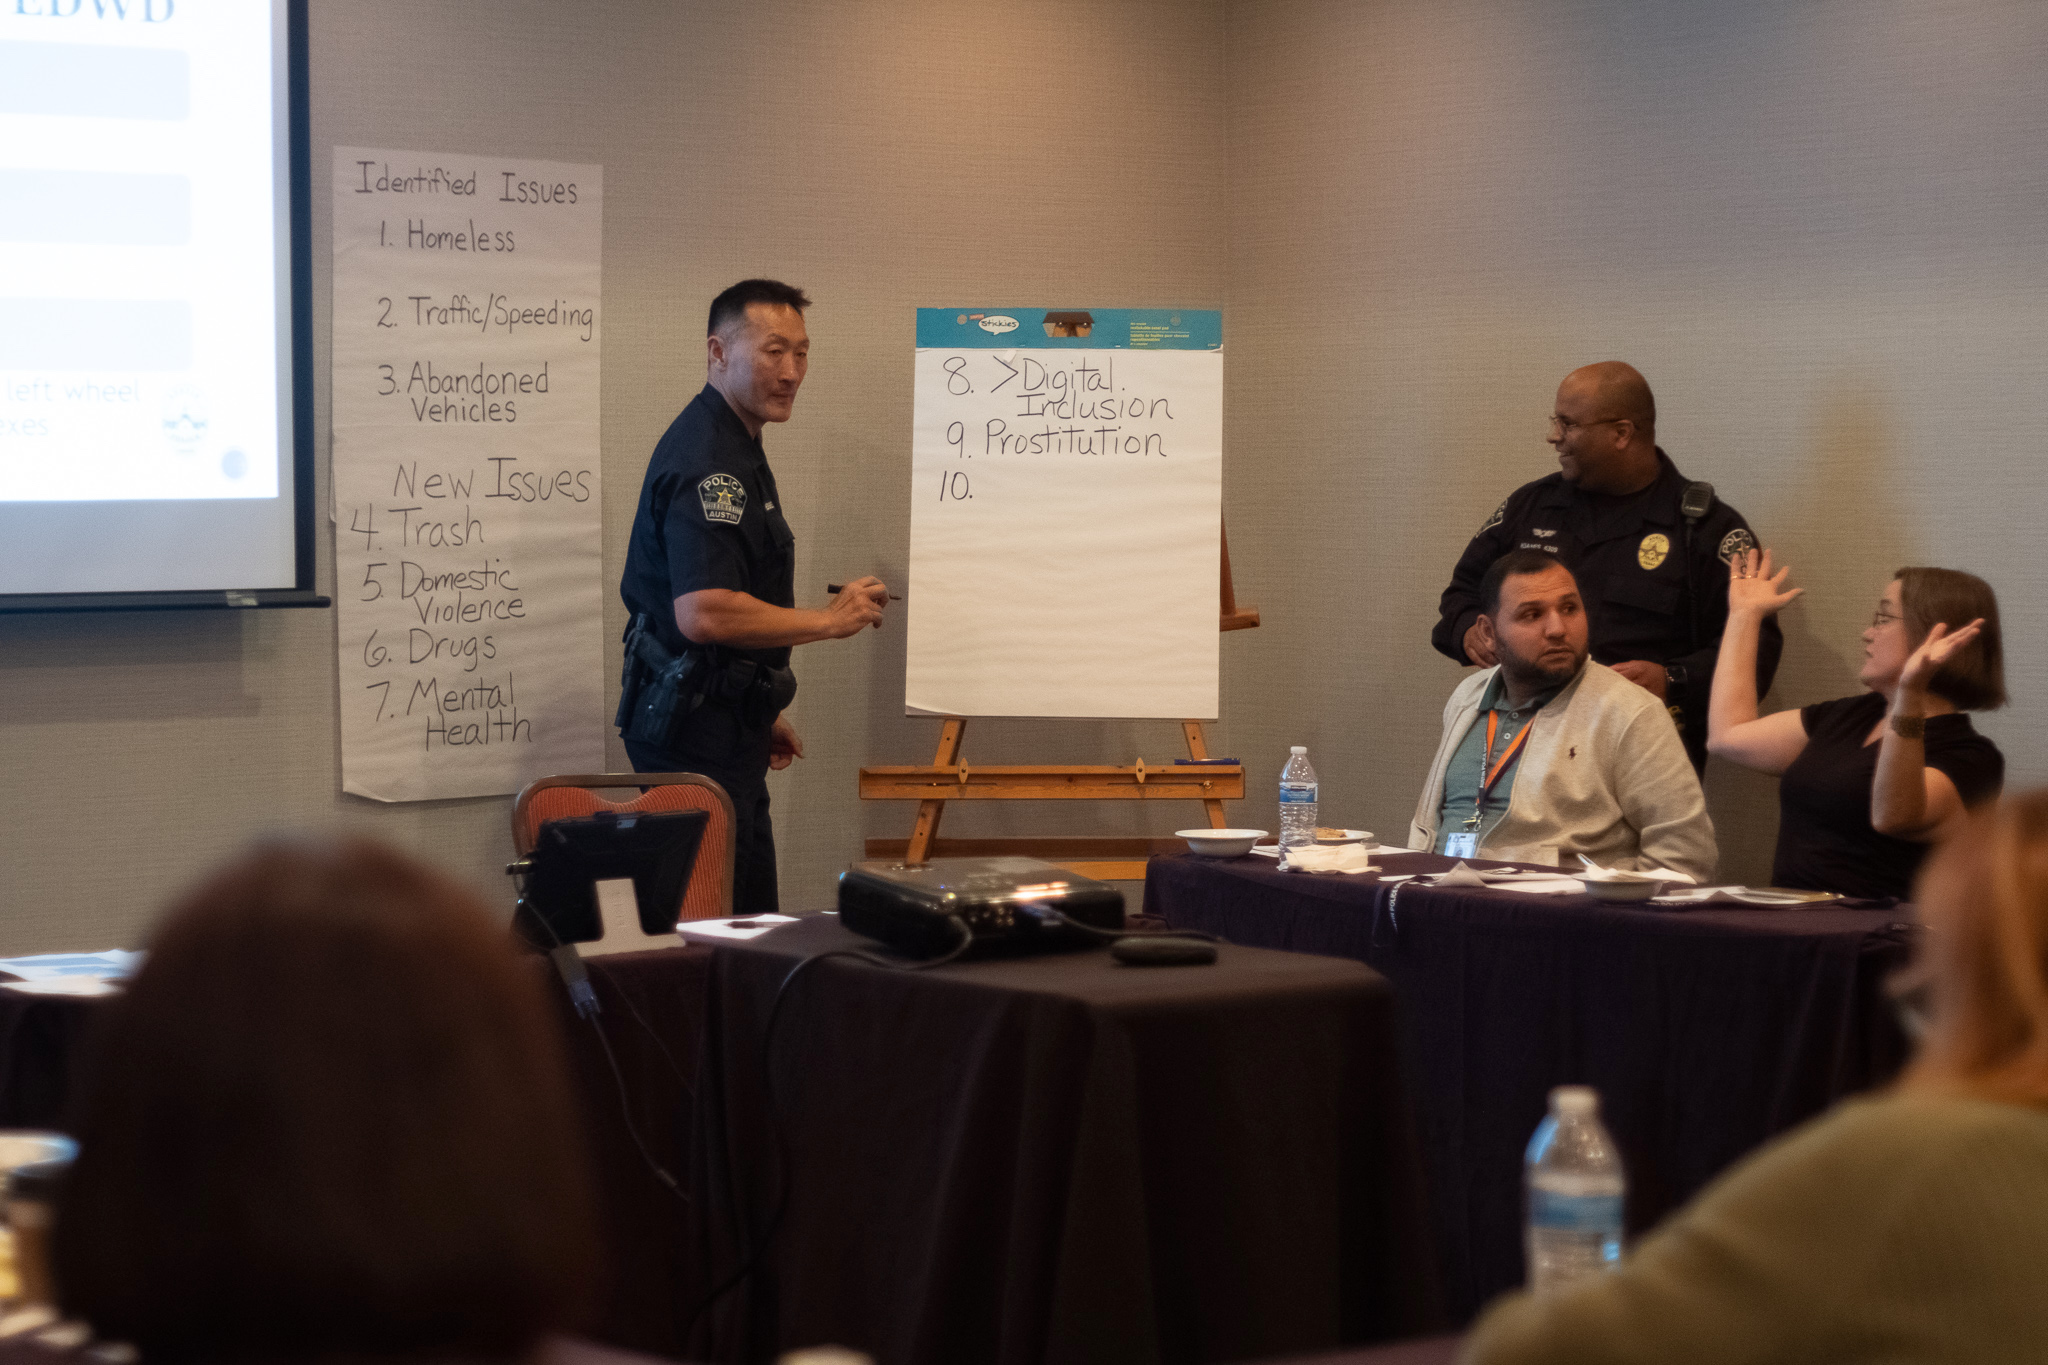 Case Study: Austin - In 2017, the Austin Police Department changed their quarterly Commanders' Forums, in which District Commanders held meetings at the District substation, to Community Forums, which rotated locations in an effort to increase accessibility and turnout